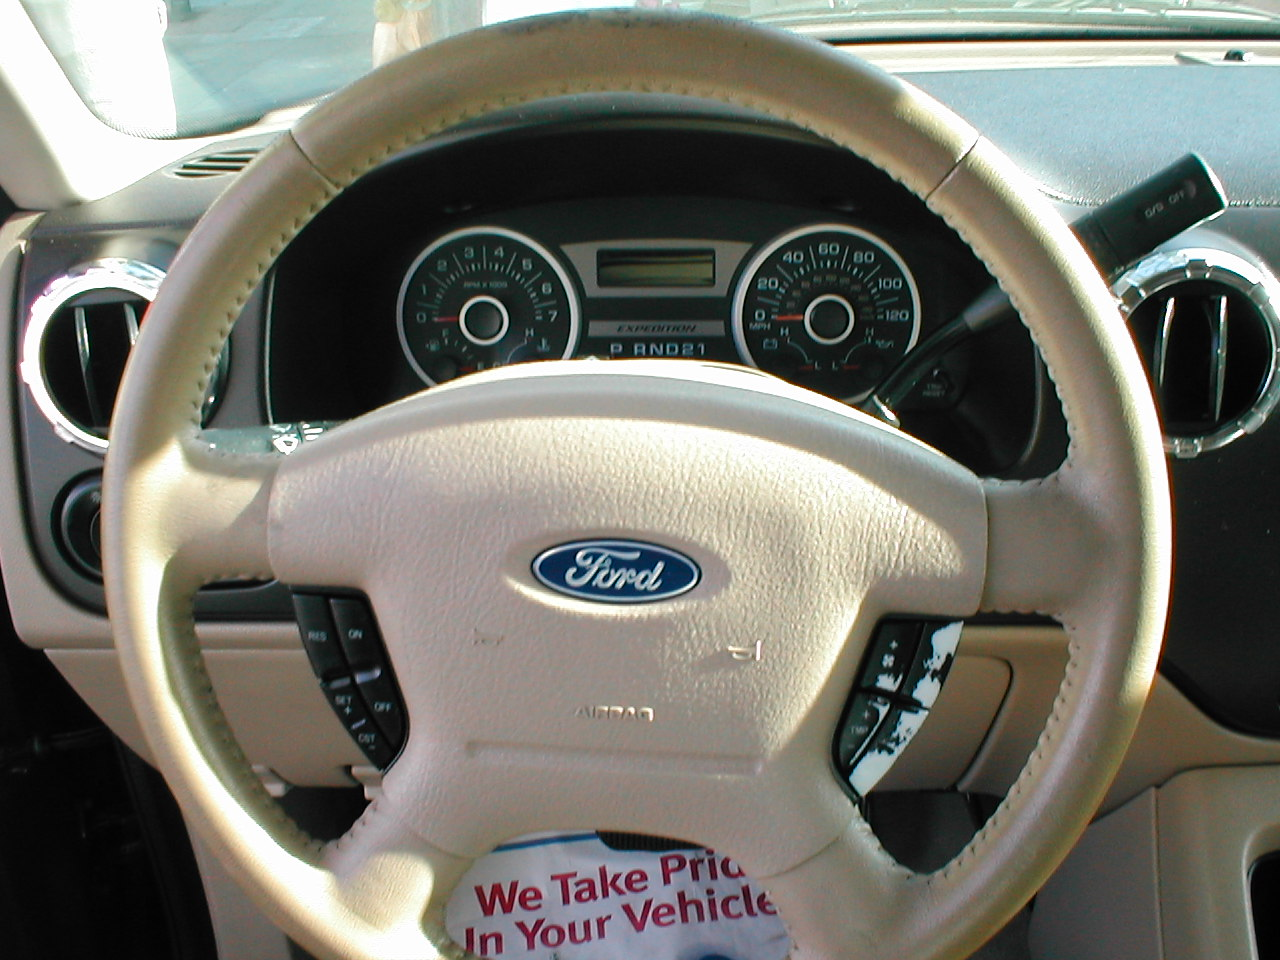 2005 Ford Expedition Interior Dimensions